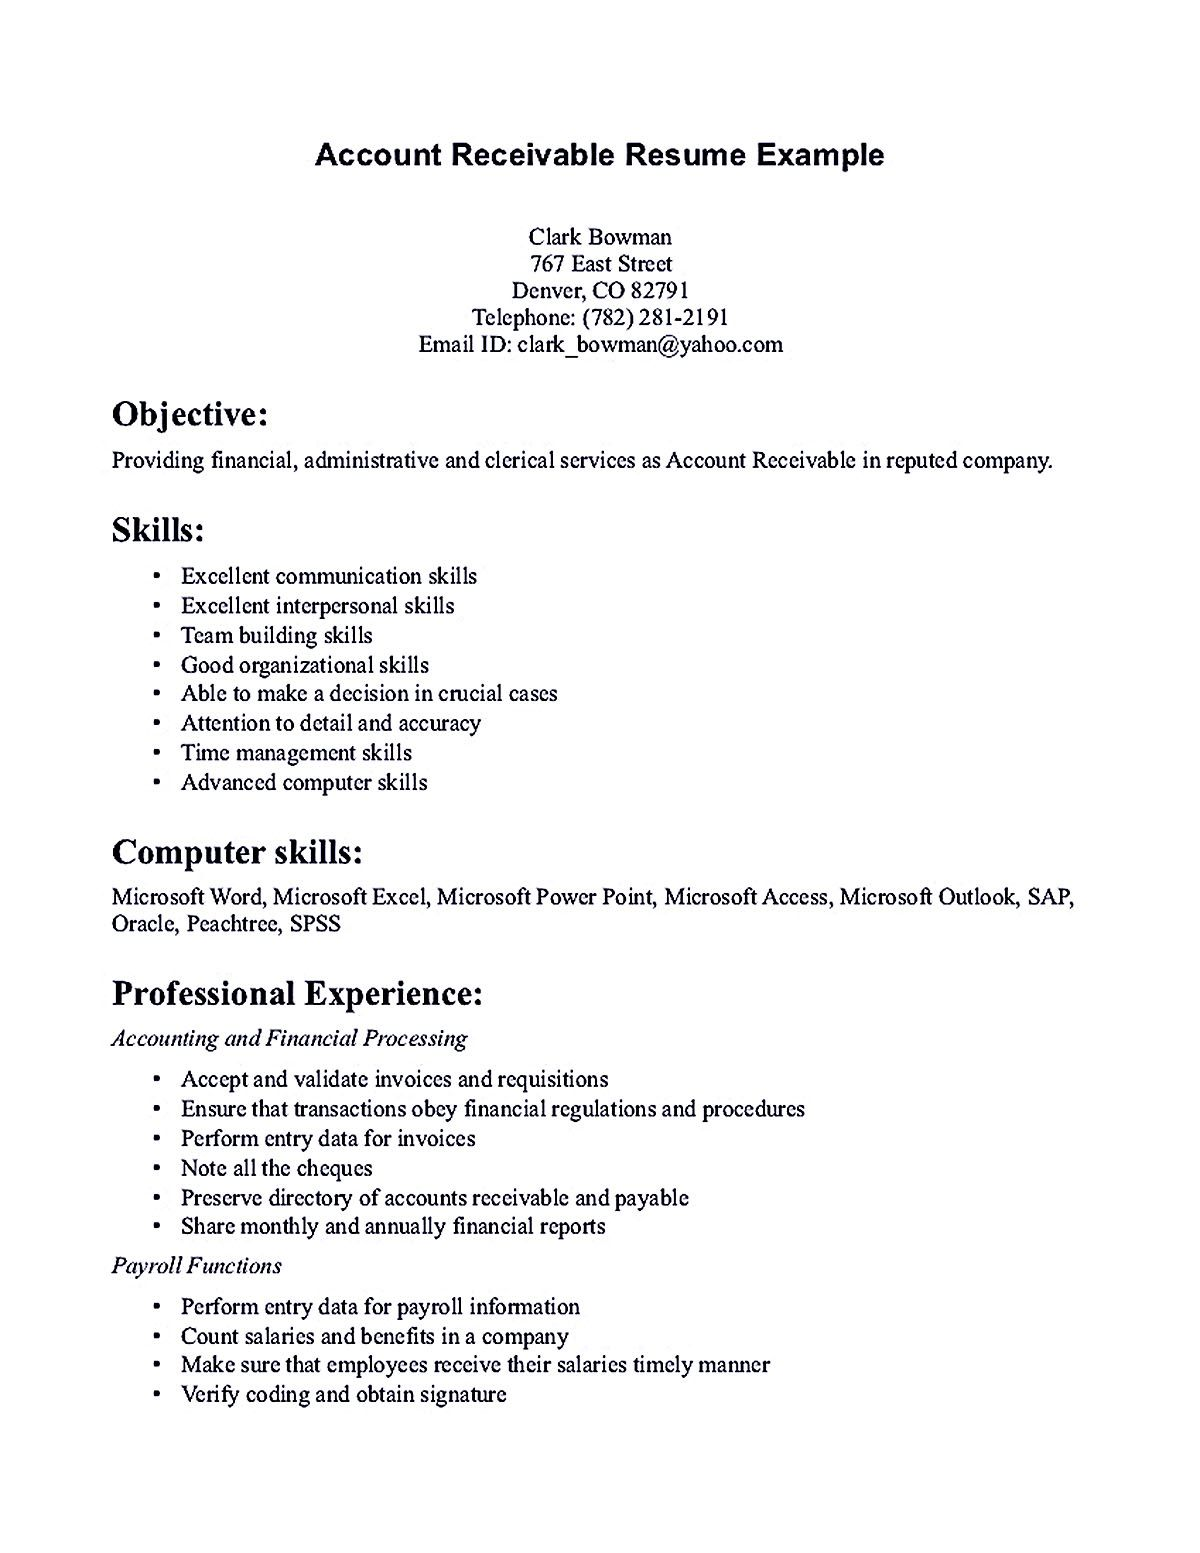 Account Receivable Resume Alluring Account Receivable Resume Shows Both Technical And Interpersonal .